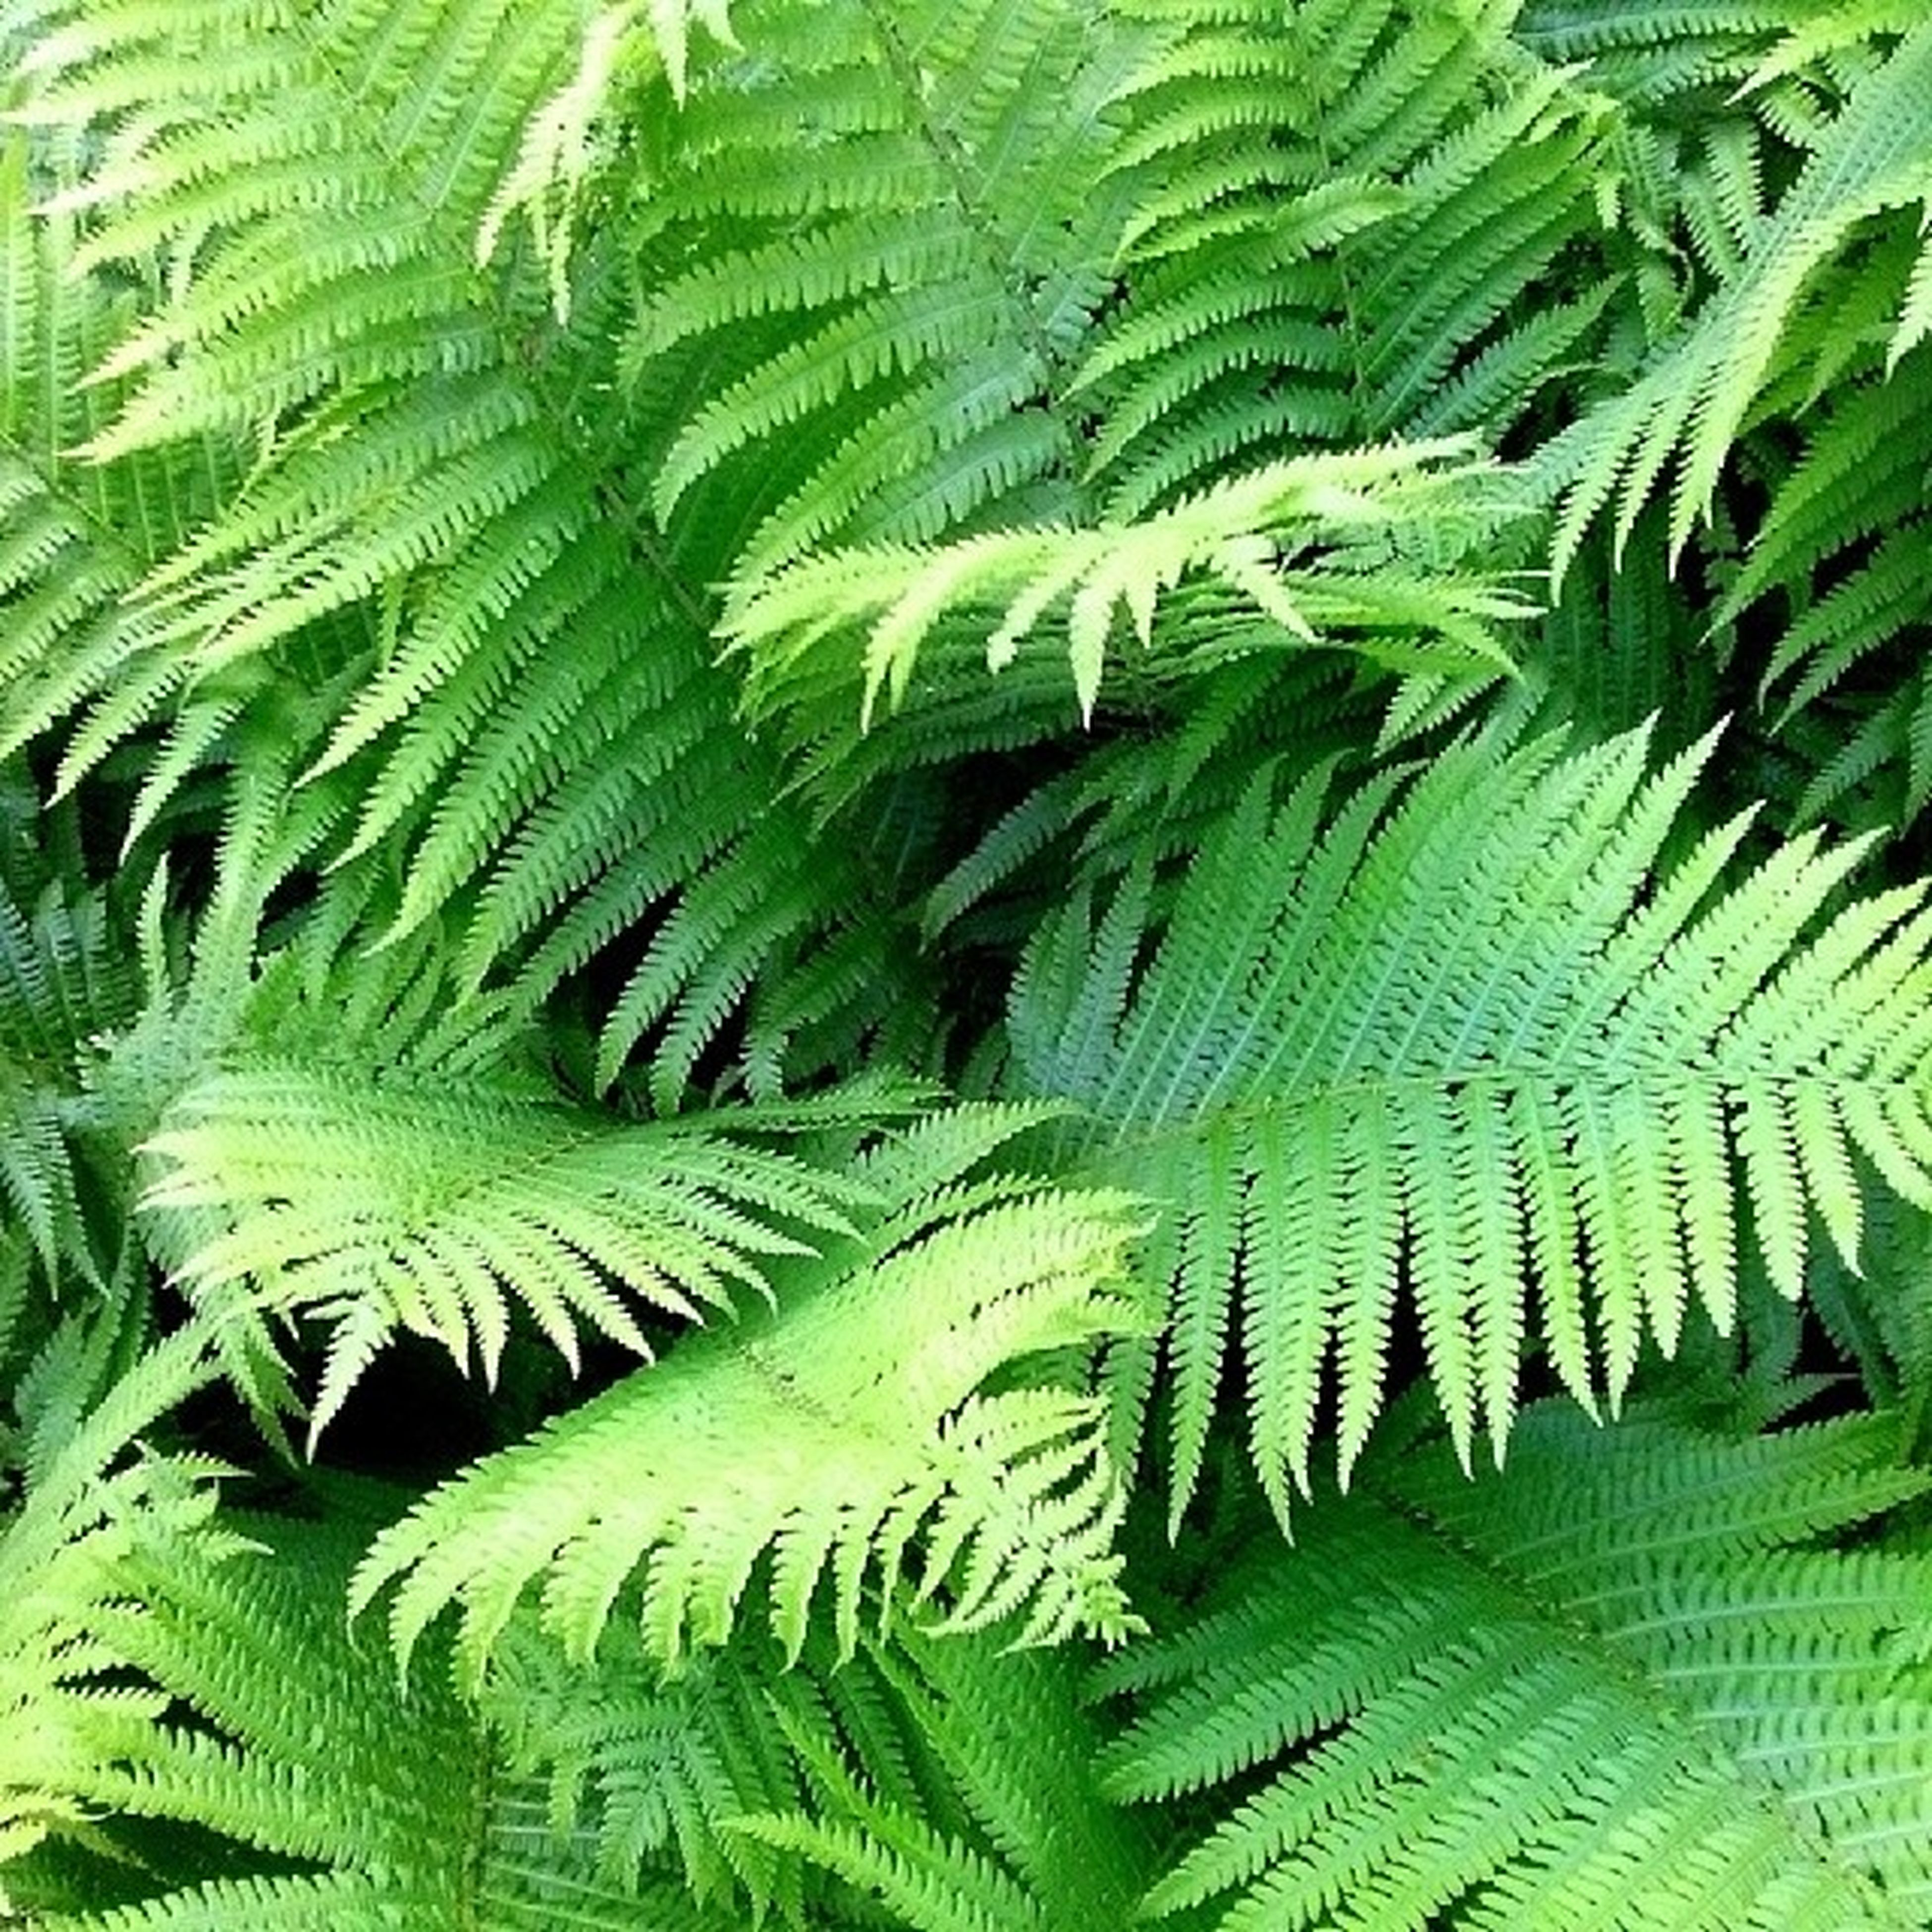 green color, growth, full frame, leaf, backgrounds, nature, natural pattern, fern, beauty in nature, plant, agriculture, tranquility, green, close-up, lush foliage, pattern, high angle view, no people, day, outdoors